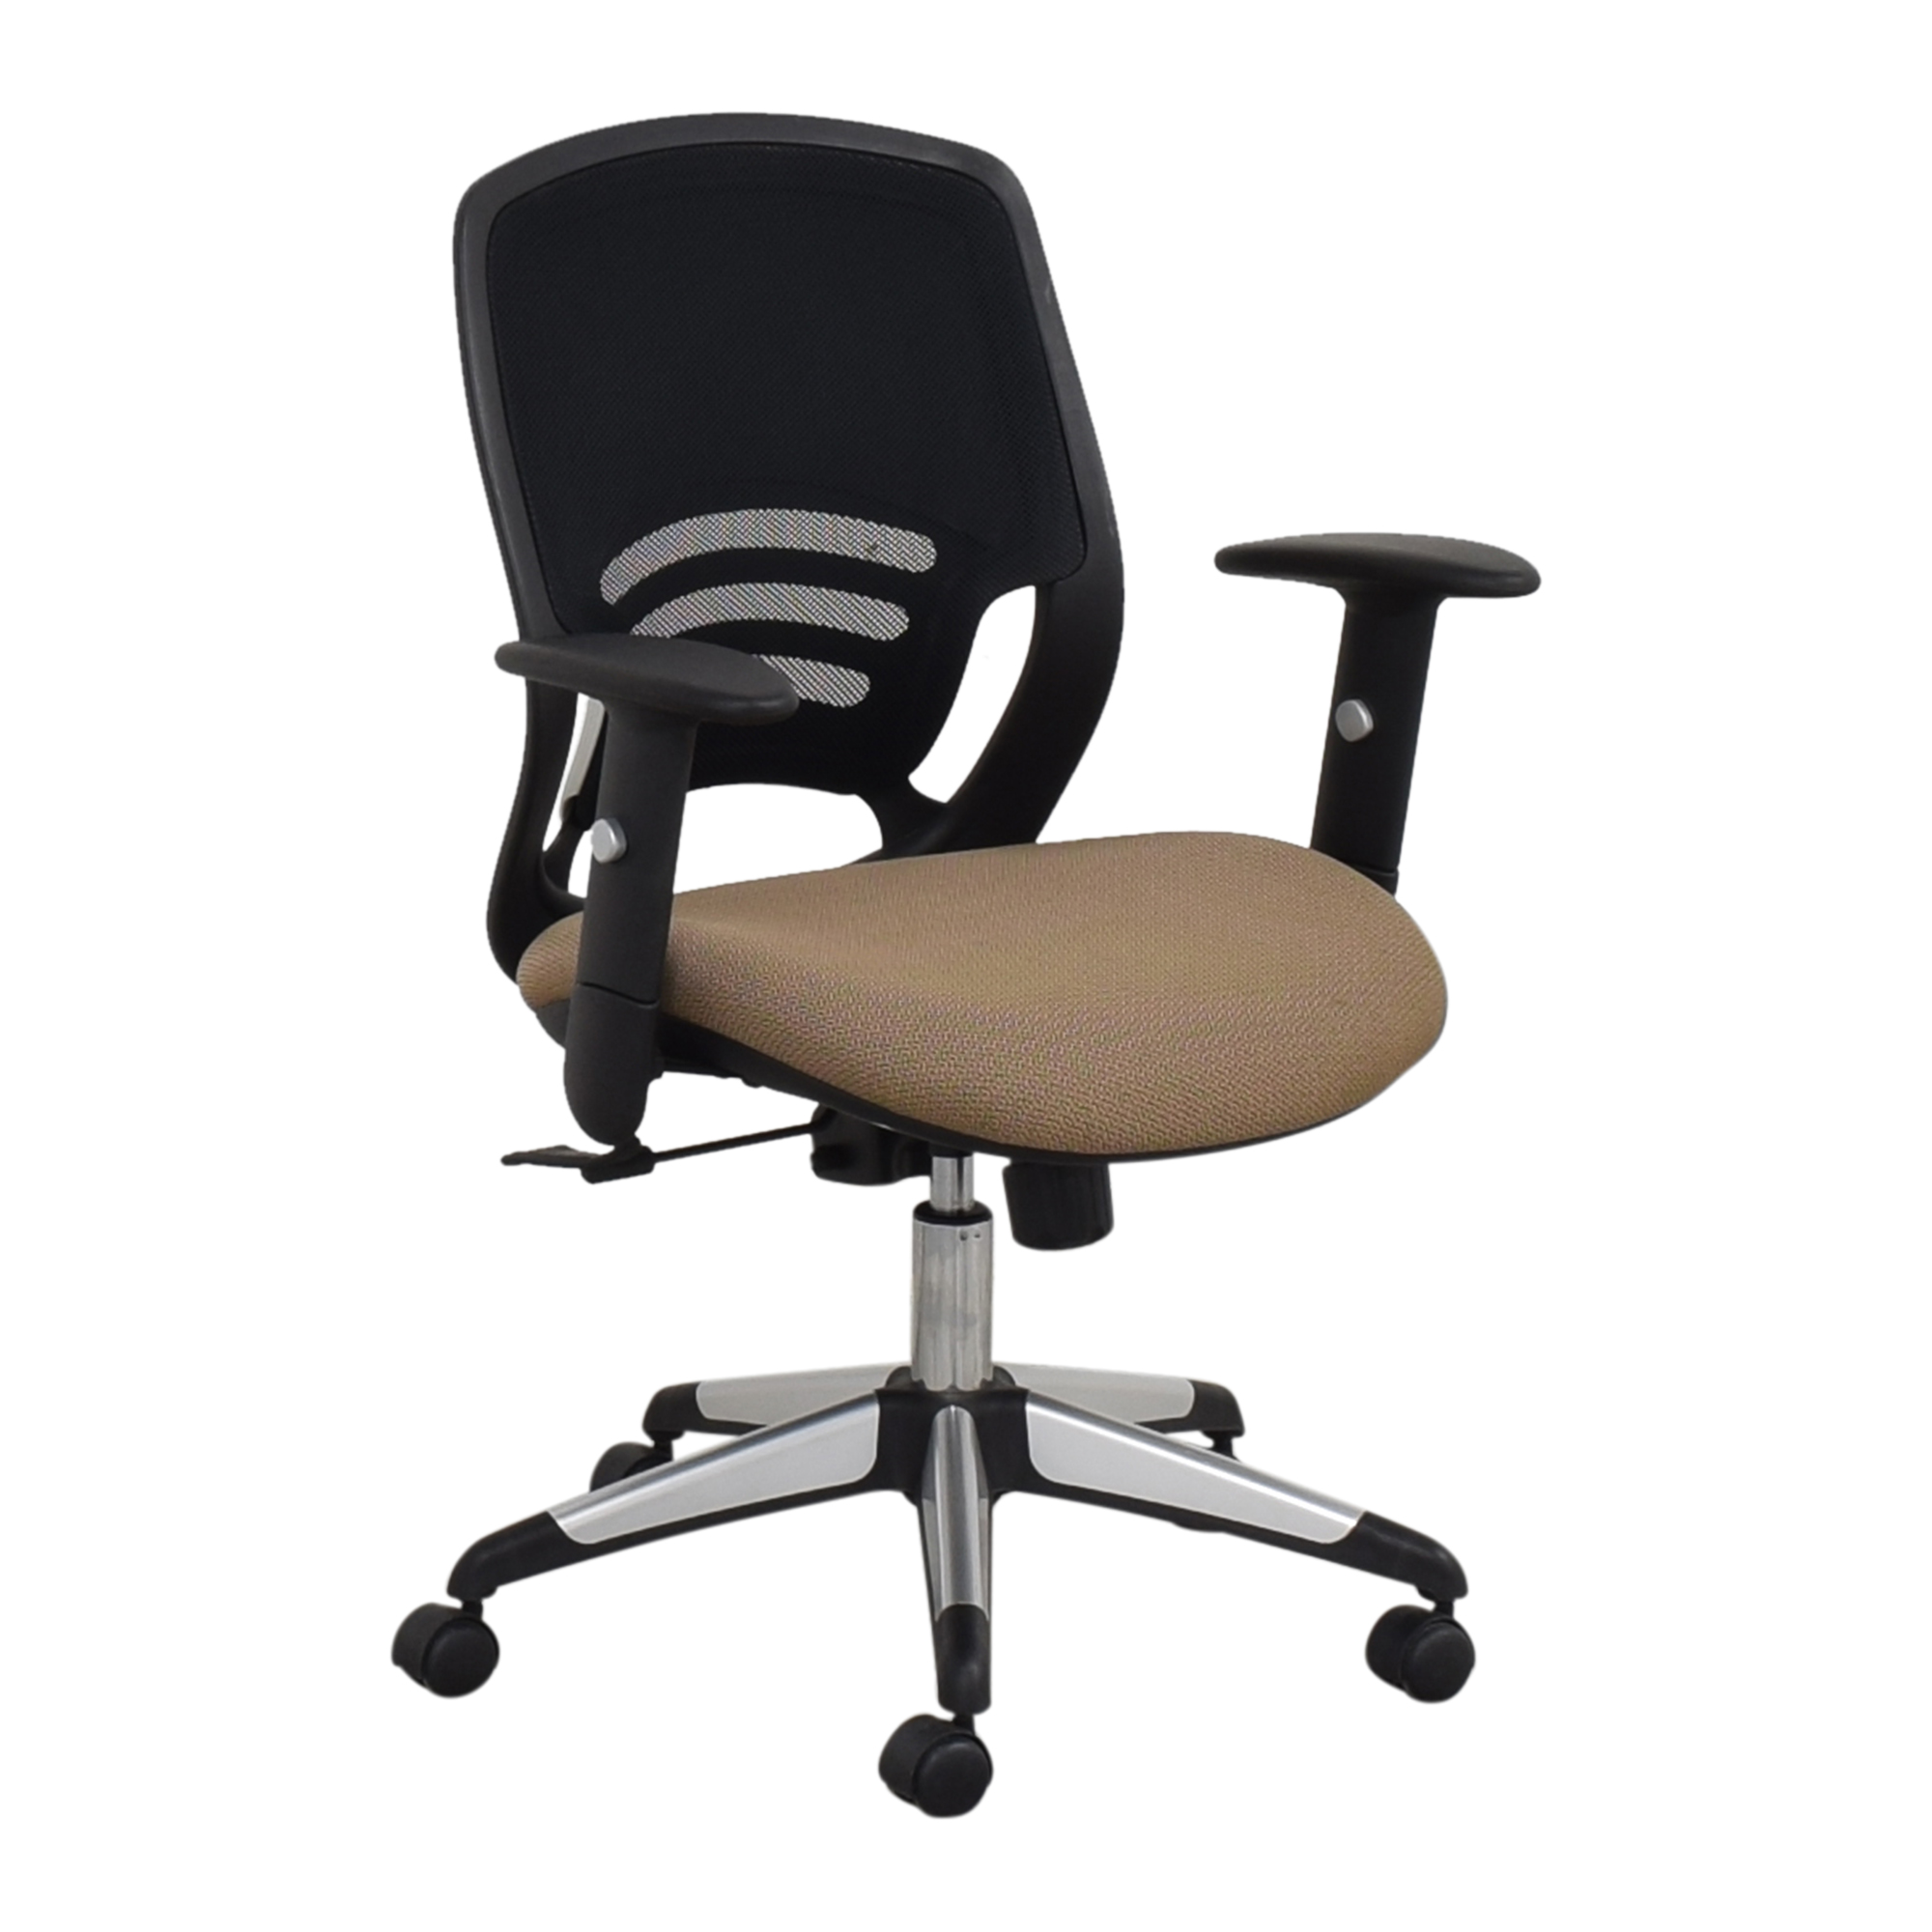 Offices to Go Offices to Go Low Mesh Back Swivel Chair ma